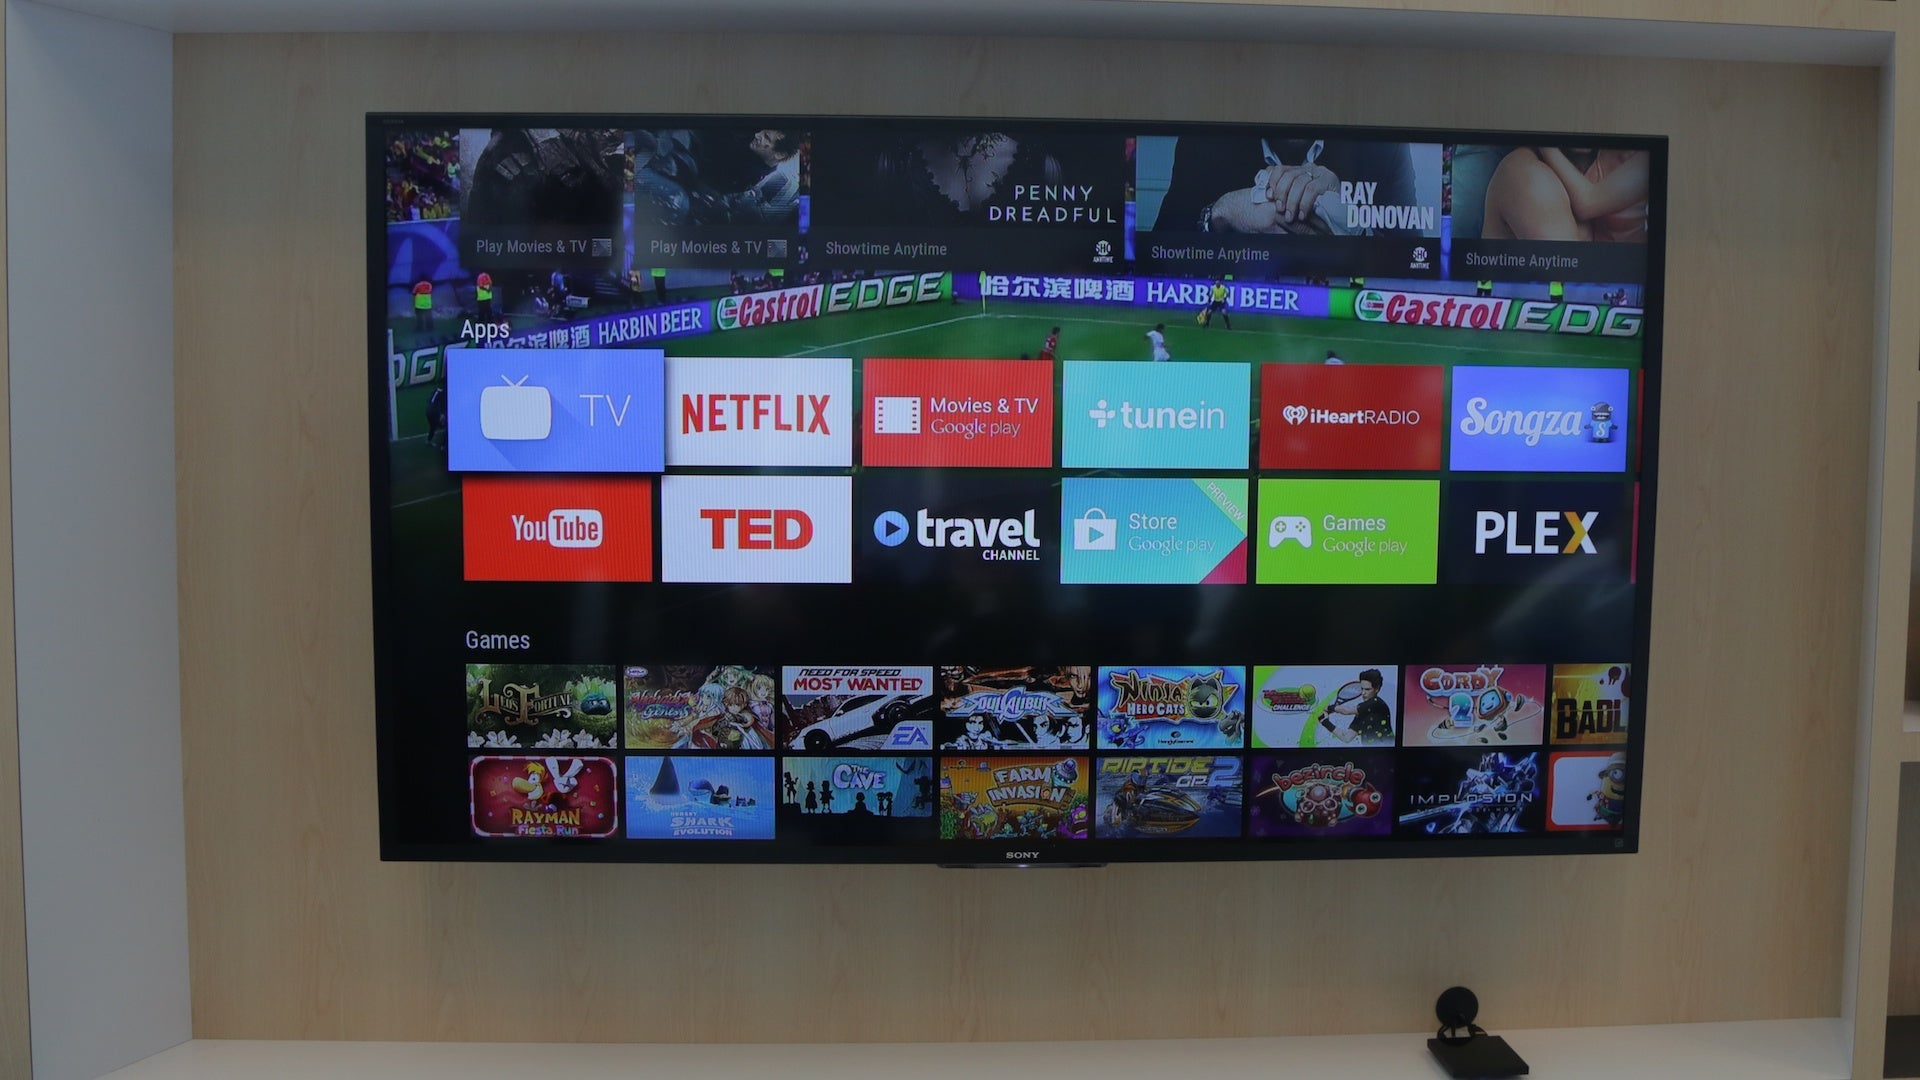 Android TV Hands-On: This Is How Smart TVs Won't Be So Darn Dumb